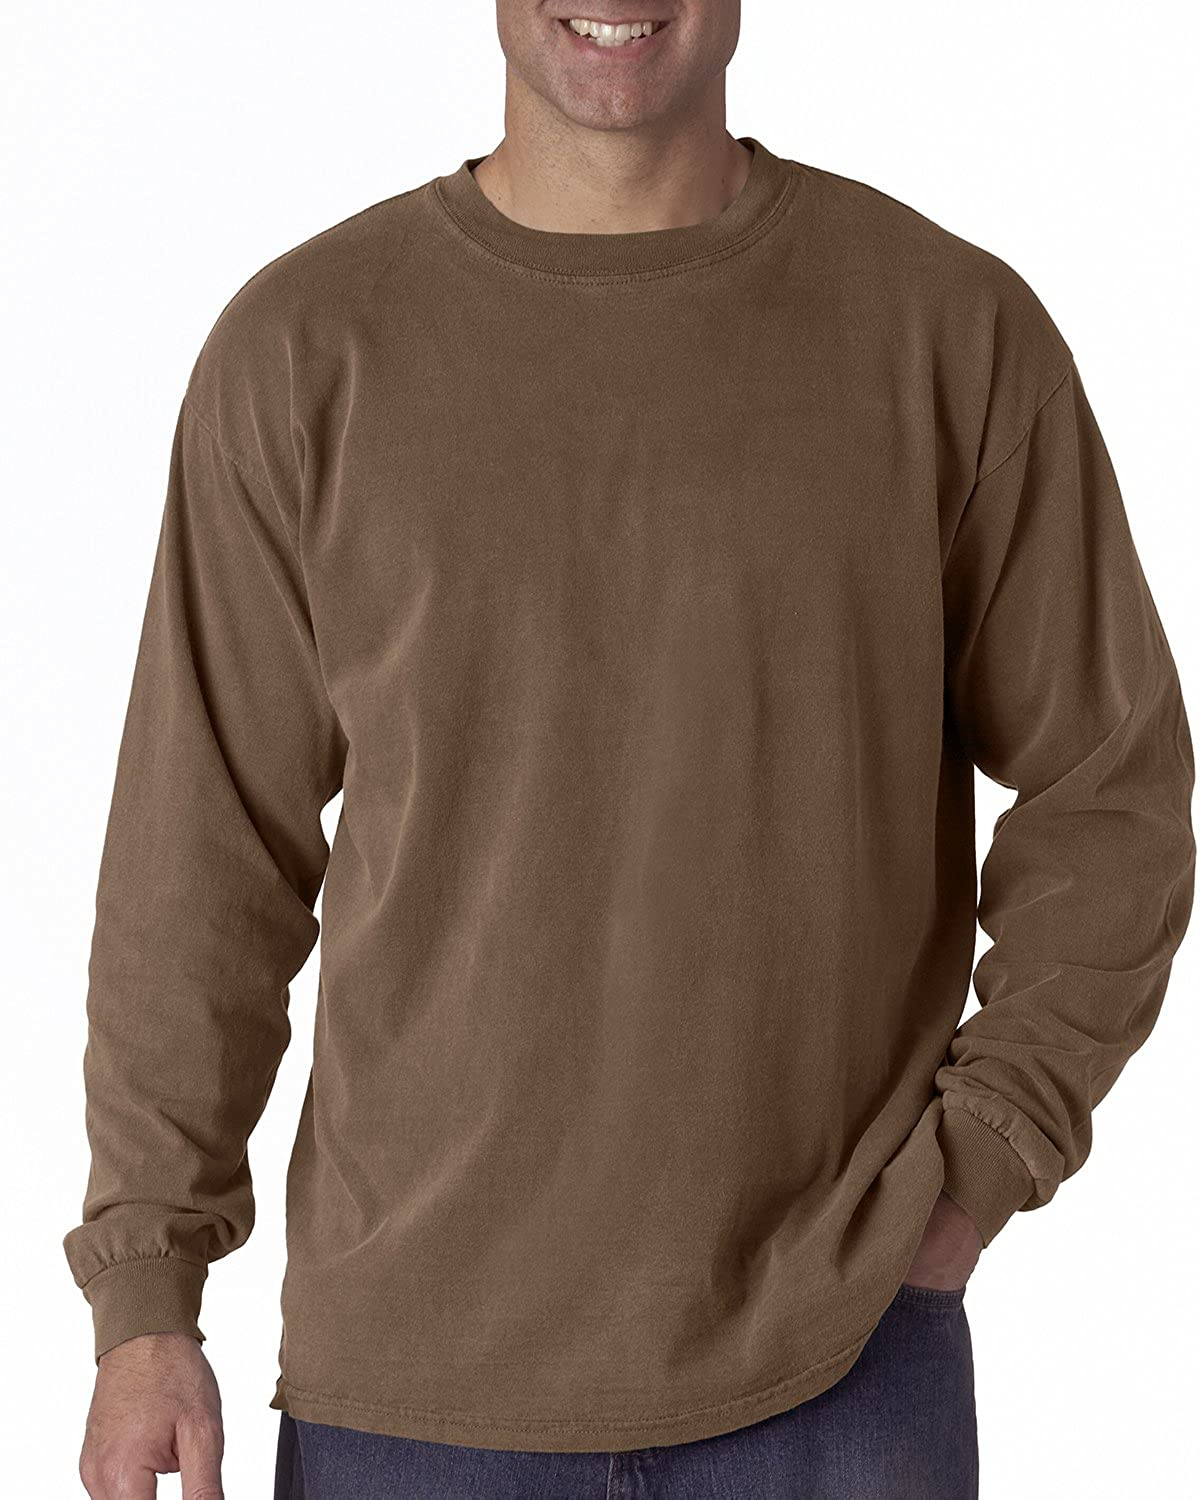 Comfort Colors - Garment Dyed Heavyweight Ringspun Long Sleeve T-Shirt - 6014 2217